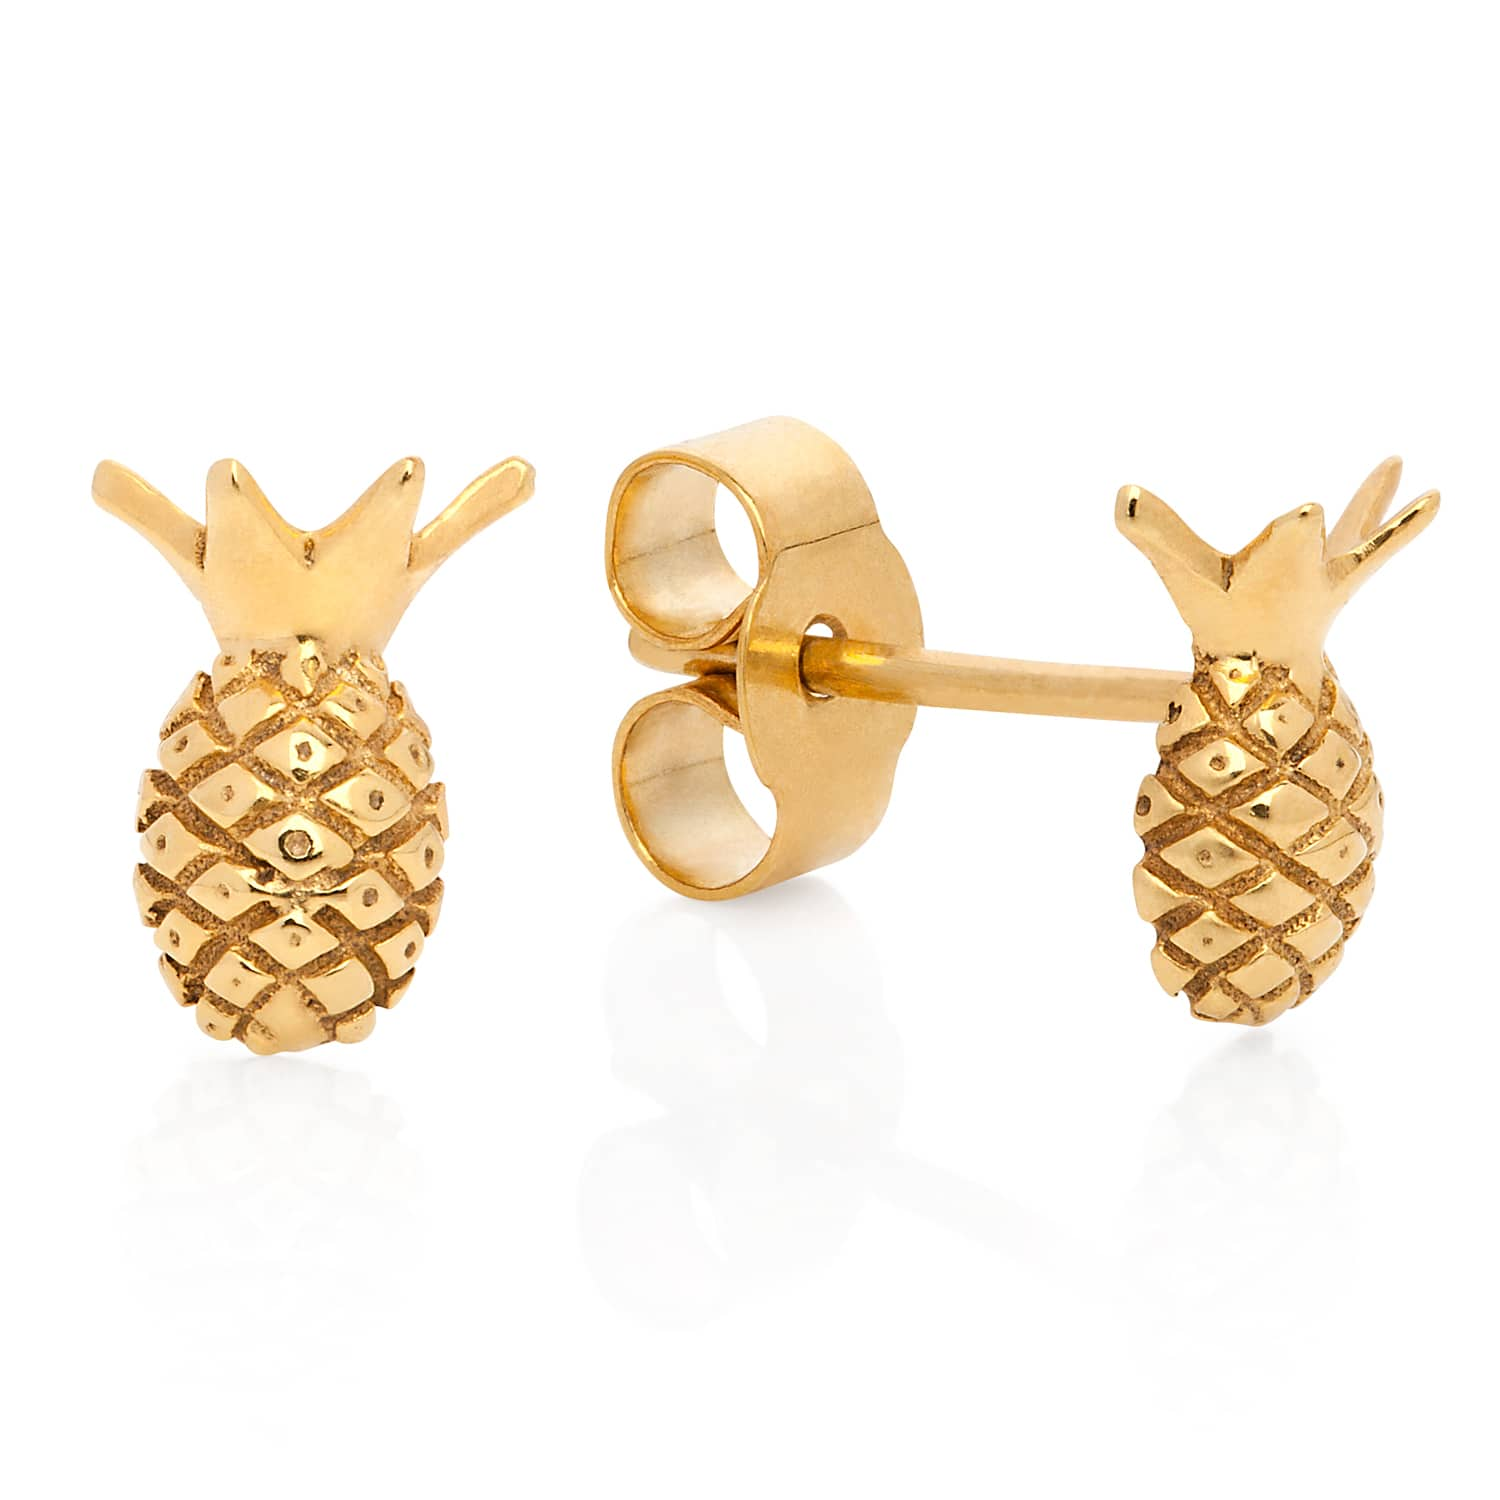 item accessories cut on fruit pair in wood jewelry from solid pineapple stud supplies x laser earrings shape